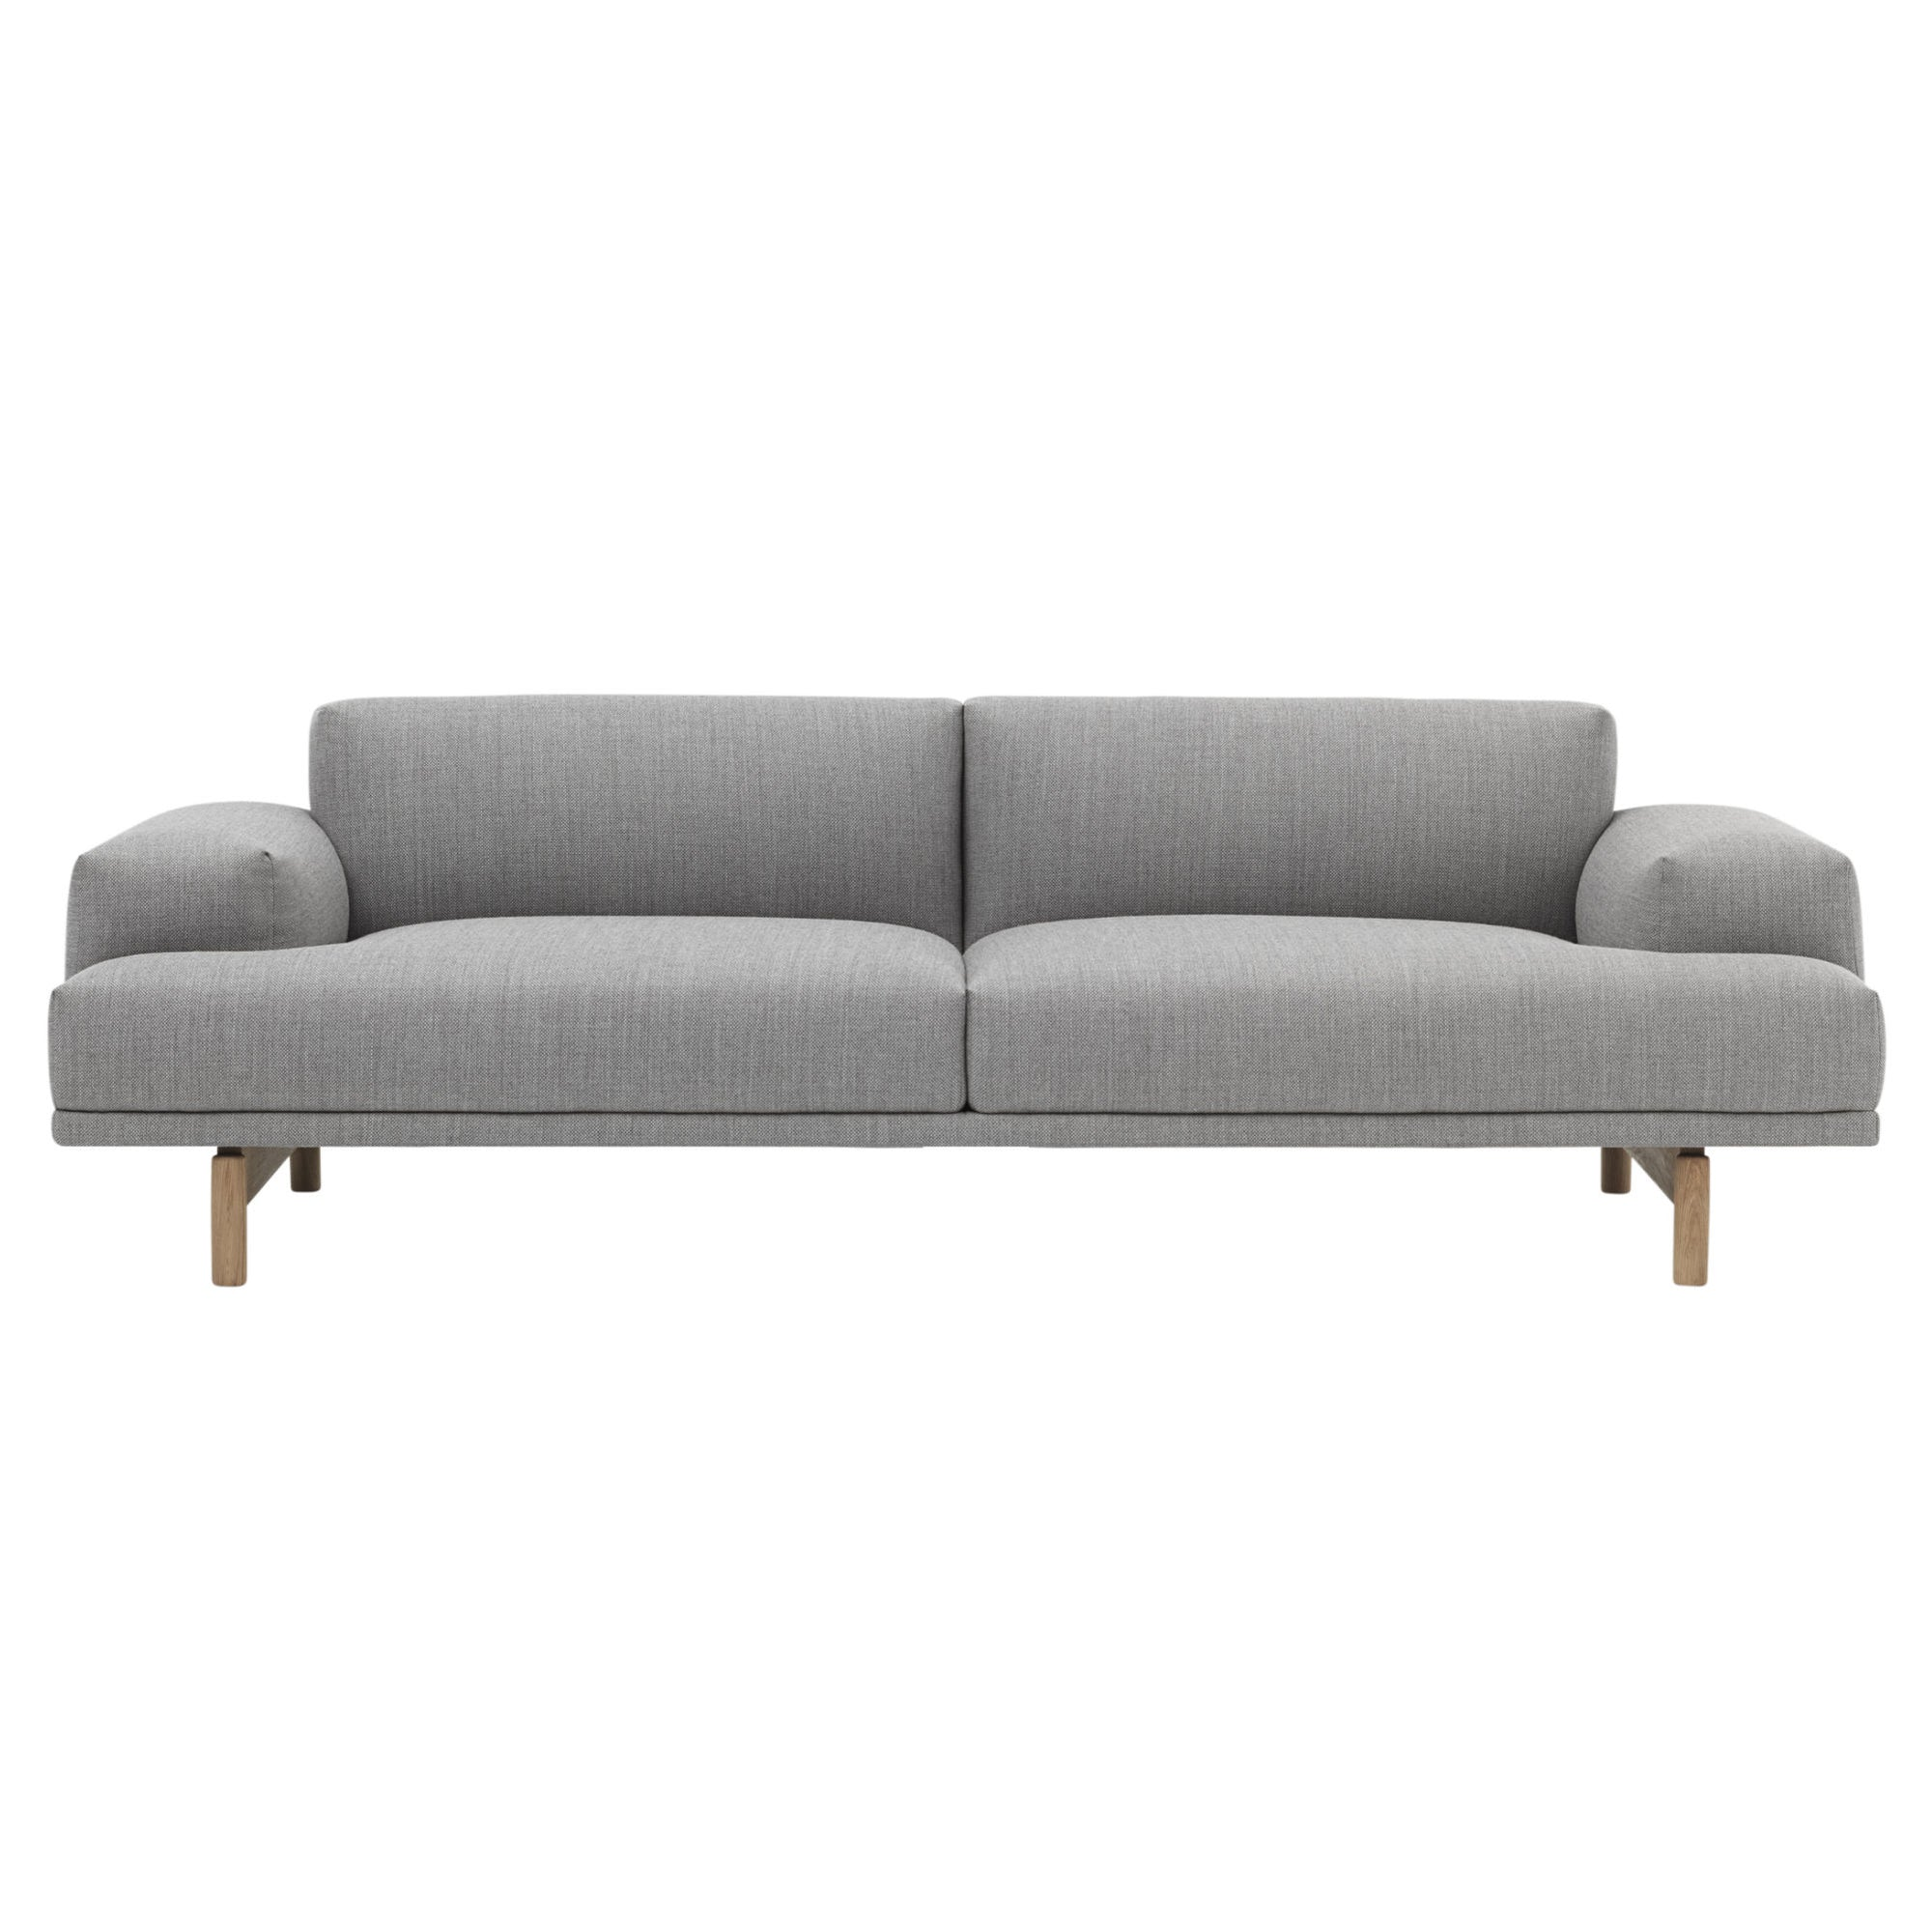 Muuto Compose sofa, 3-seater, fiord 151, oak legs